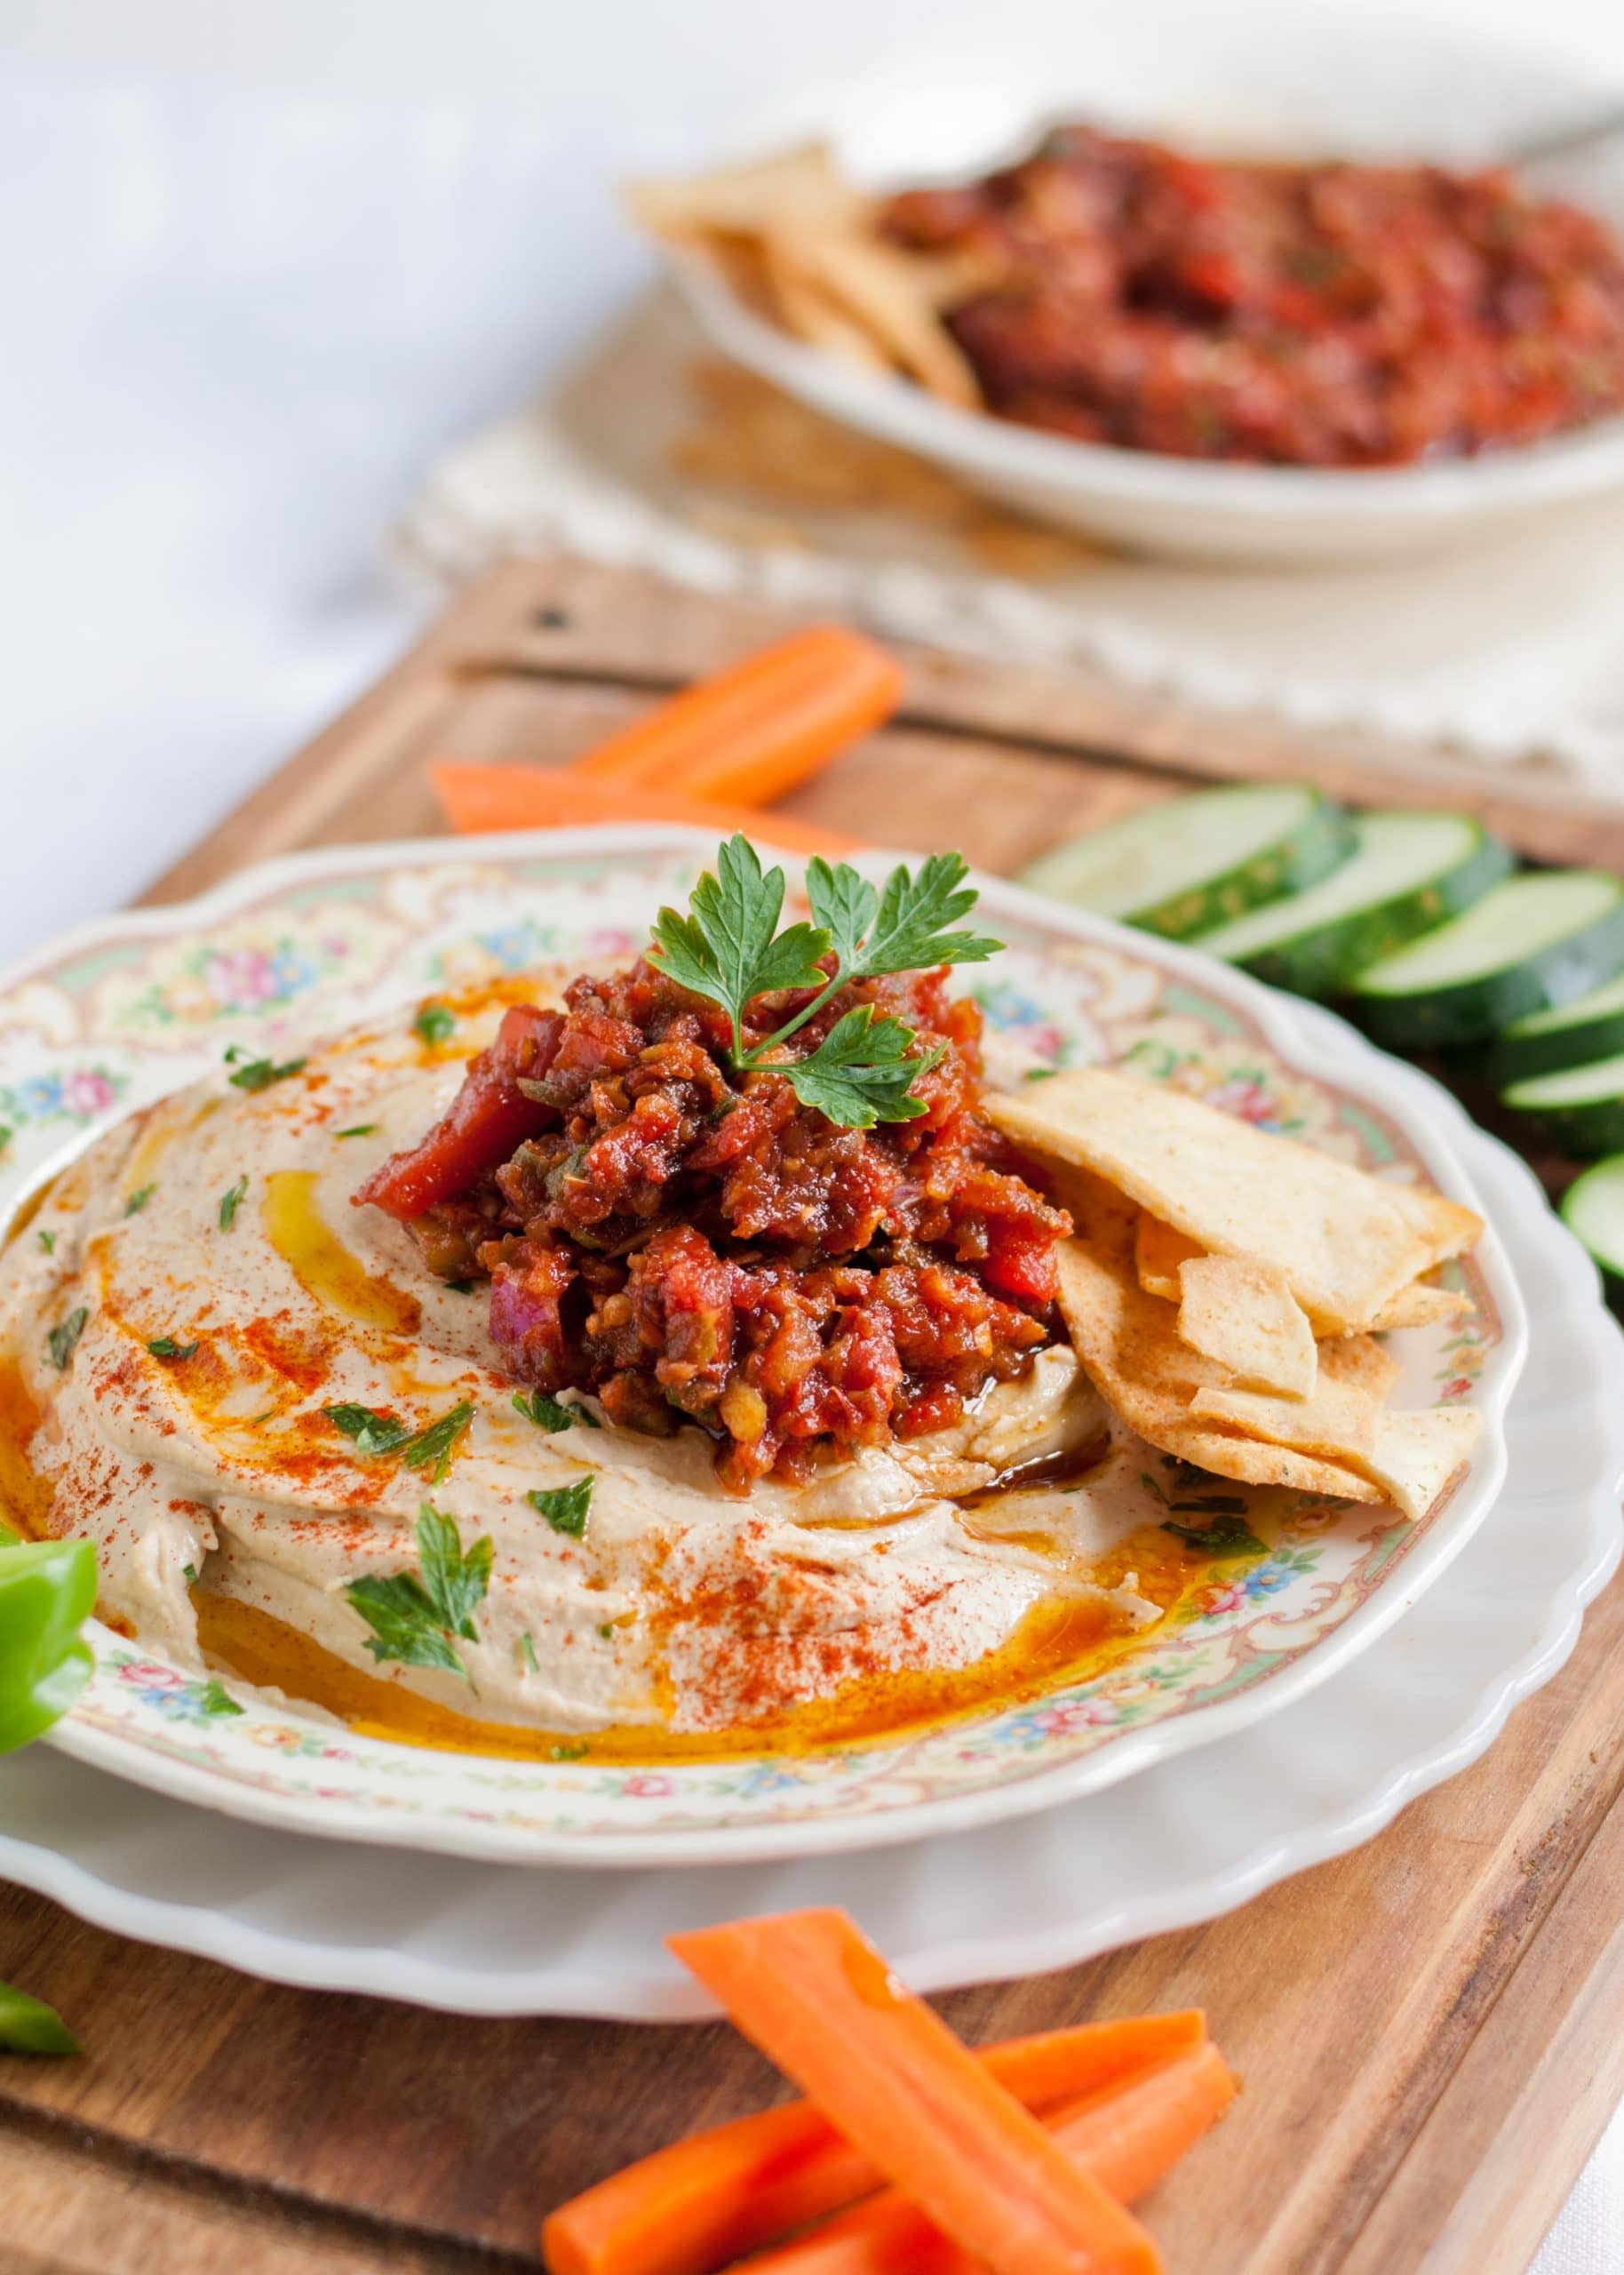 Spicy Turkish Ezme Salad and Hummus | Neighborfoodblog.com